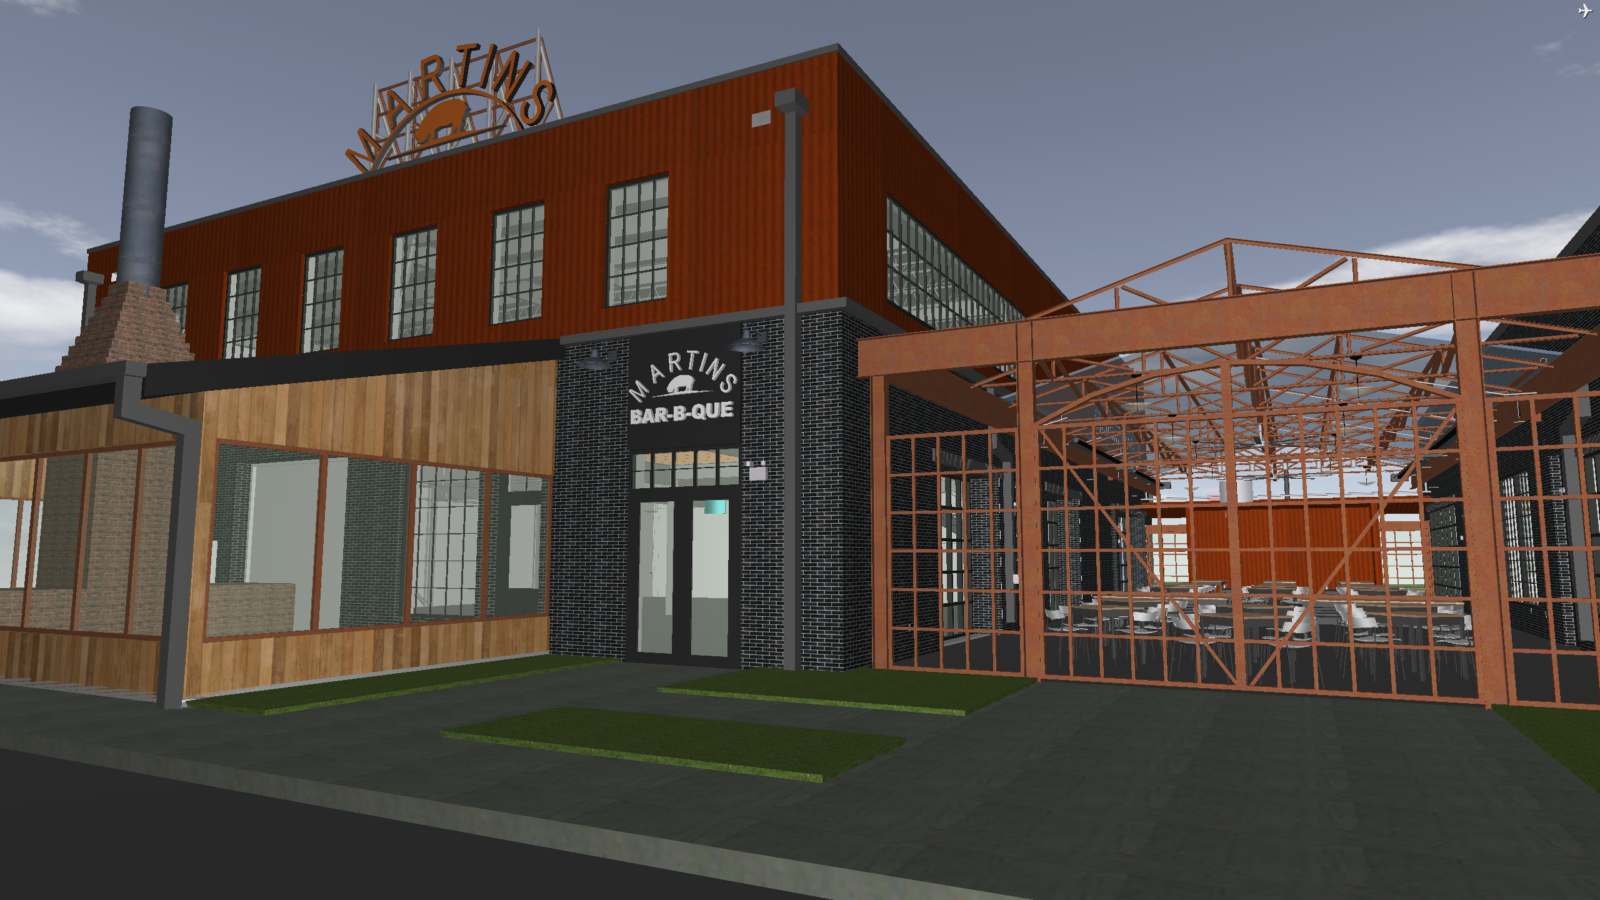 A 3D rendering of the exterior of Martin's BBQ.